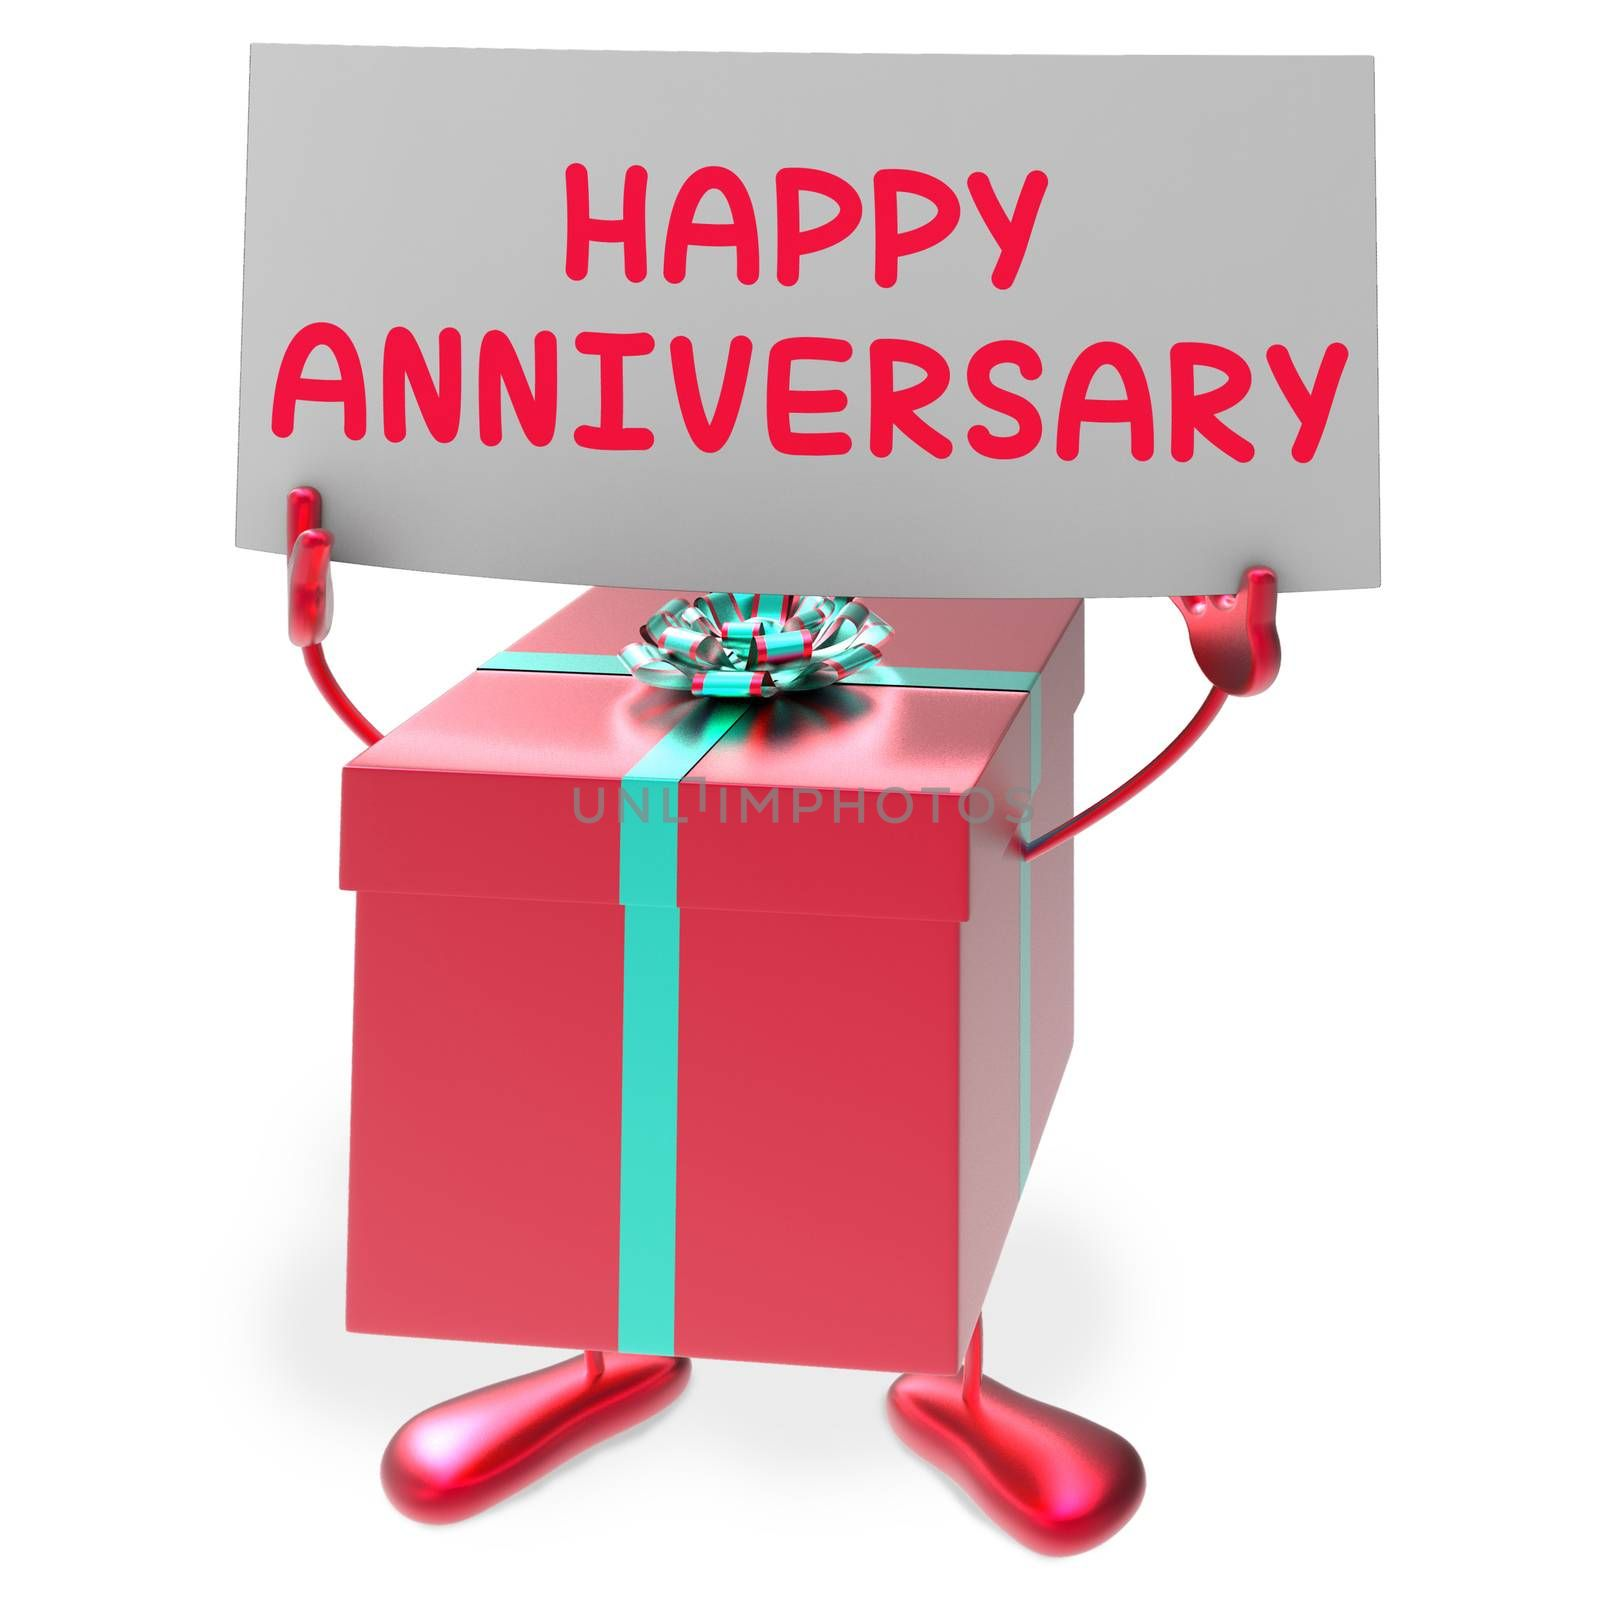 Happy Anniversary Sign and Gift Showing Cheerful Festivities and Parties